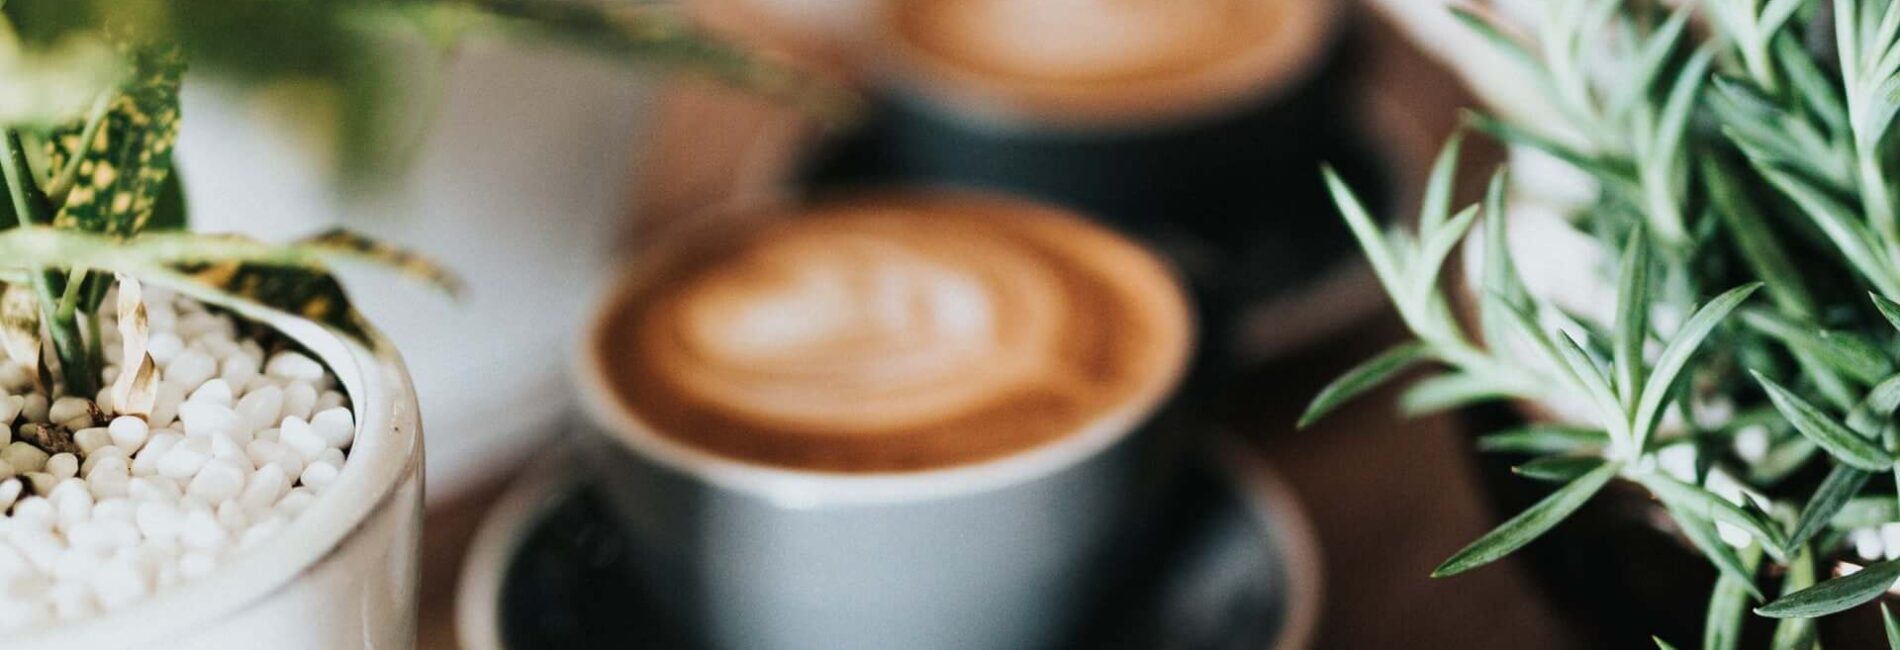 Coffee Reduces Risk of Basal Cell Carcinoma